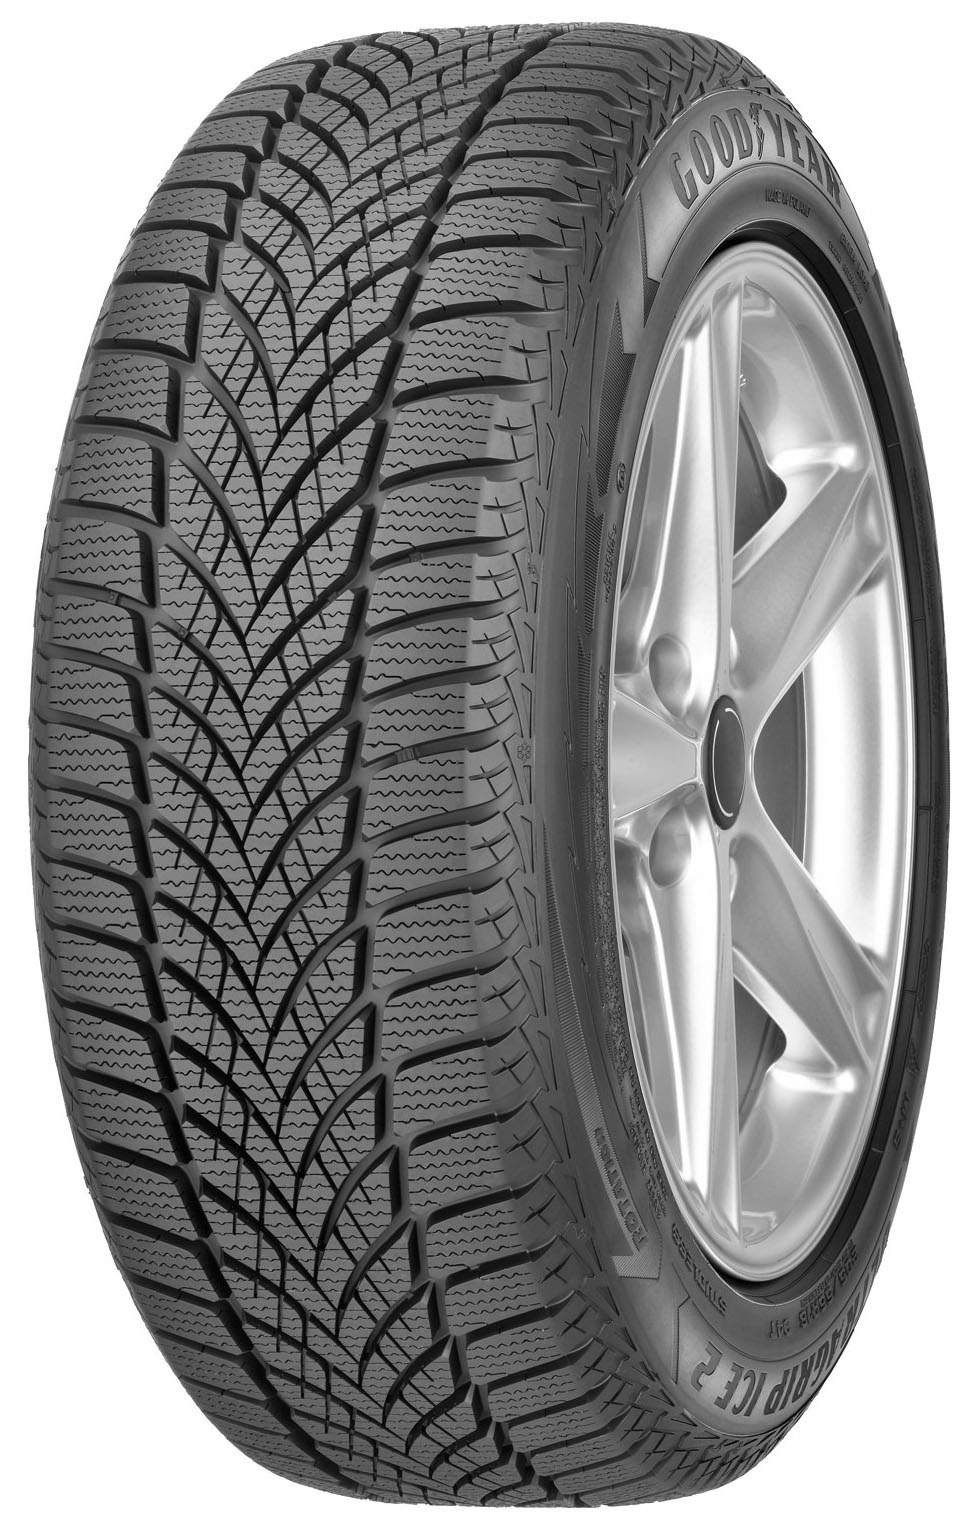 Автошина R16 215/55 Goodyear UltraGrip Ice 2 97T (зима)